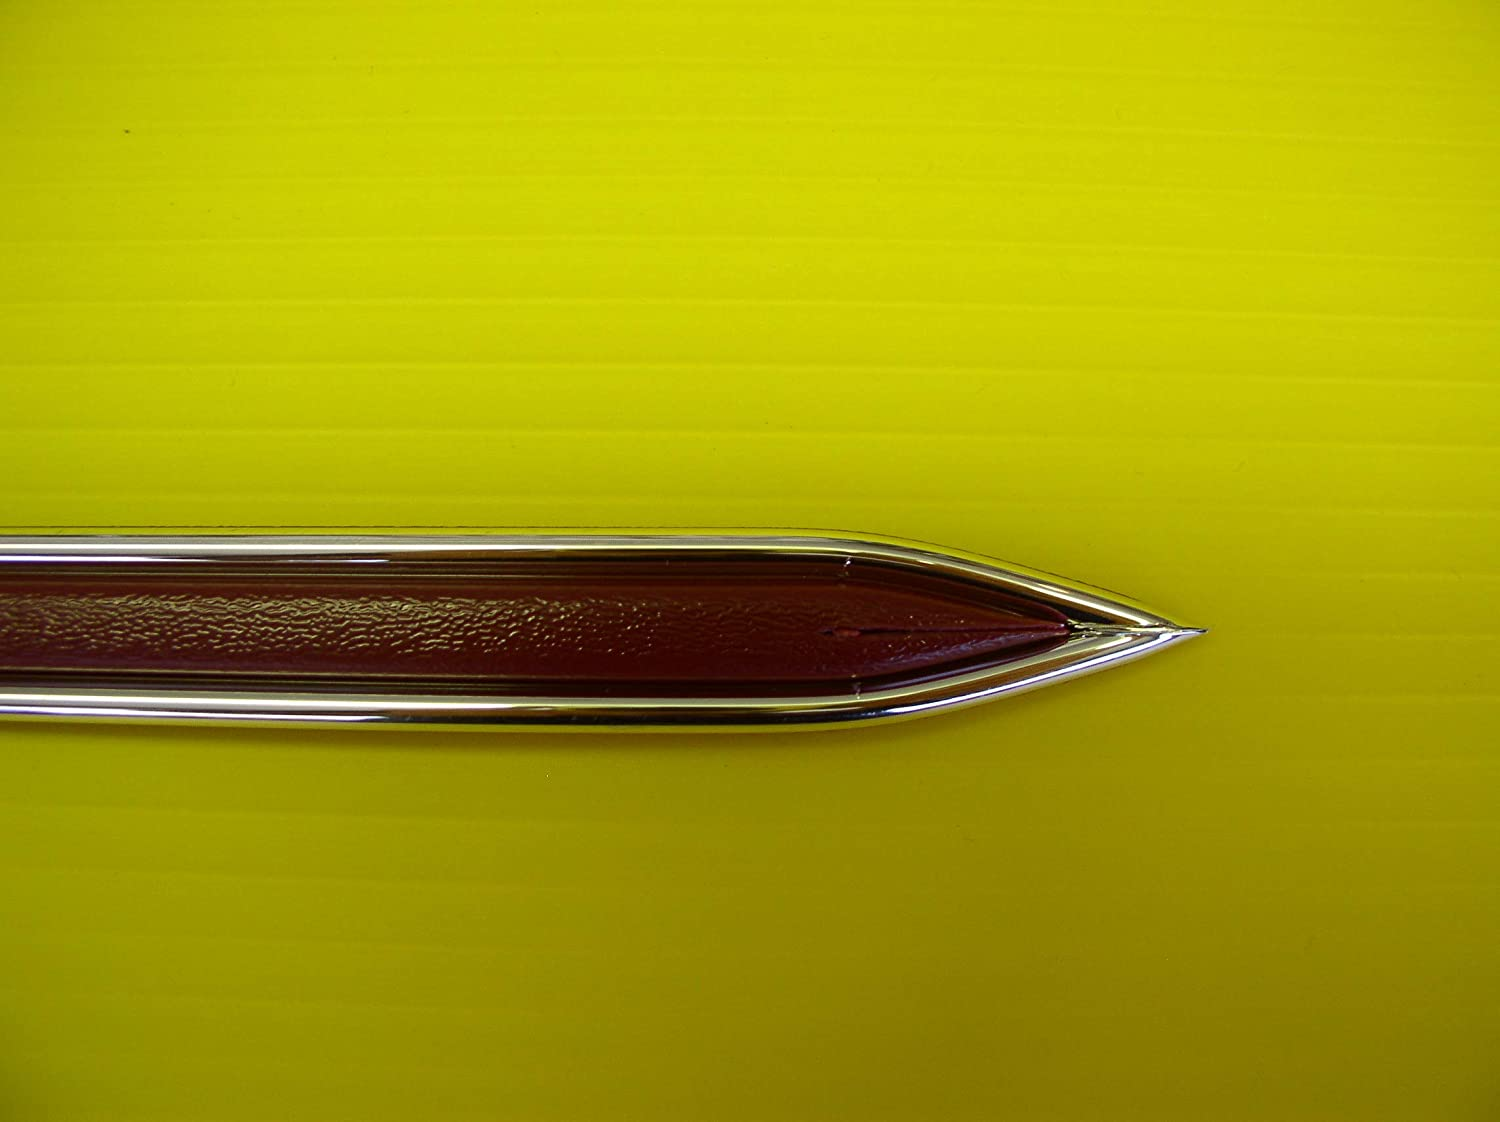 1 1//4 Chrome and Colored Body Side Molding with Finished Ends Black